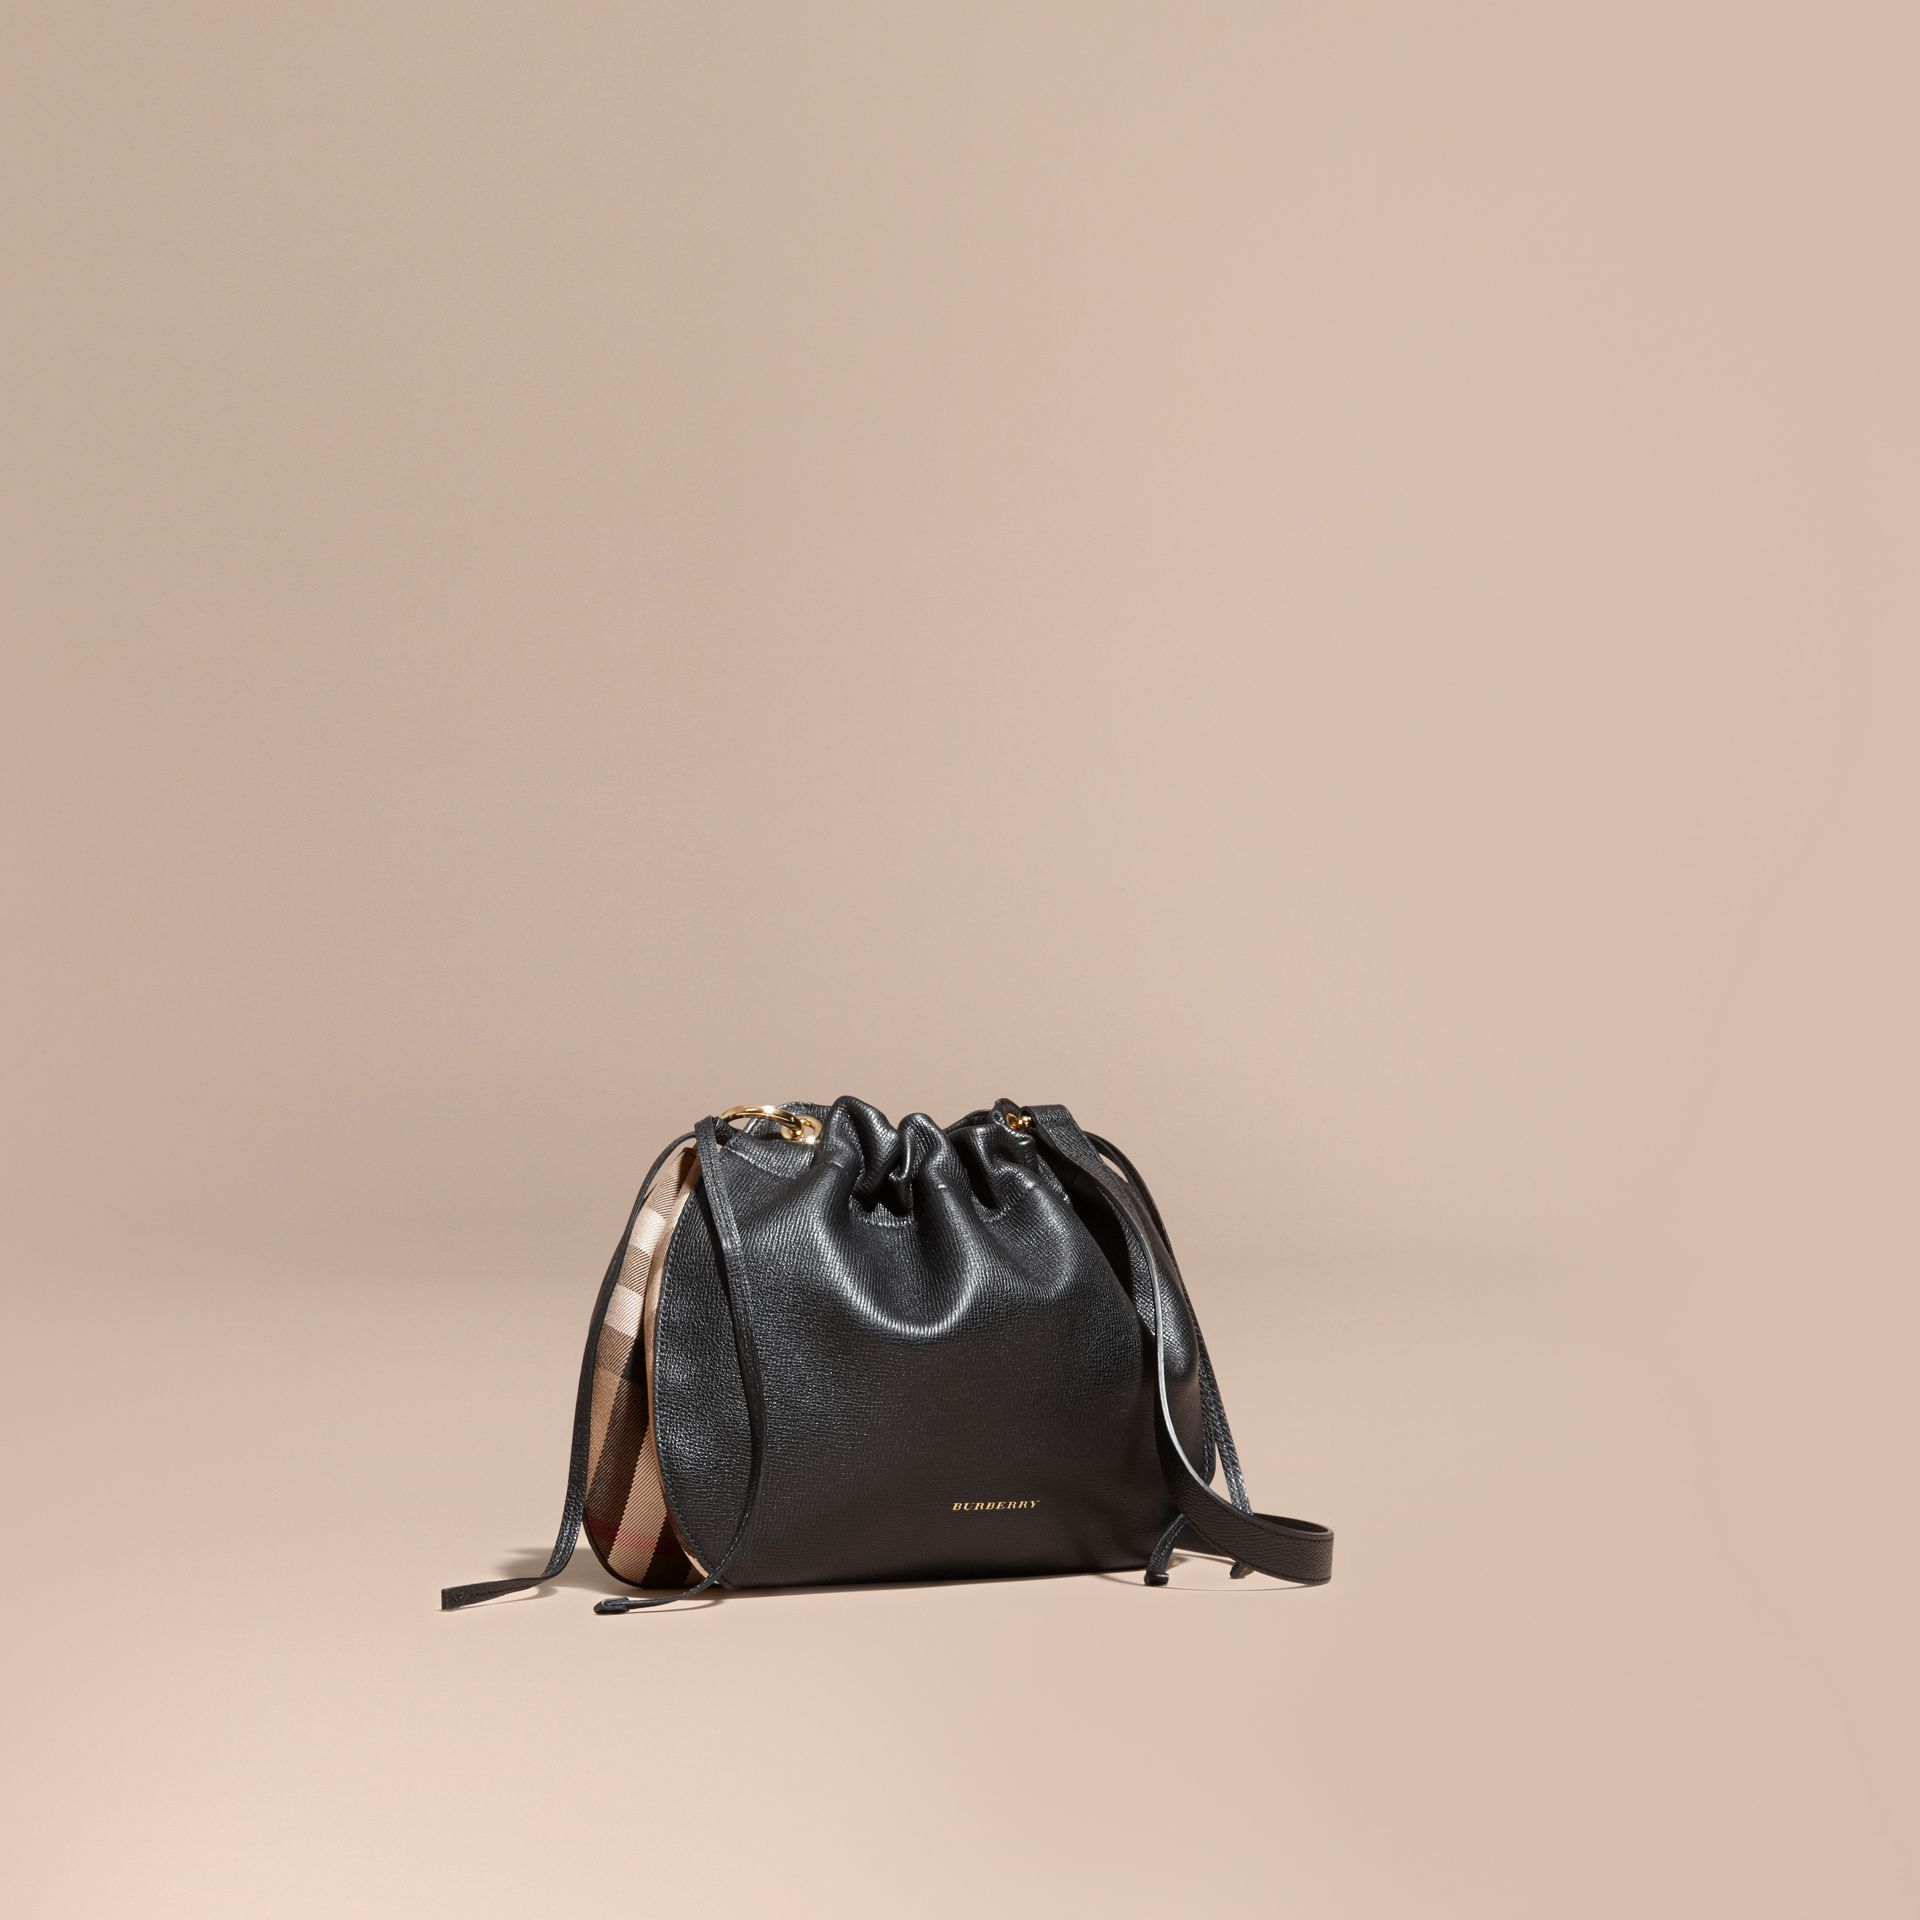 Black Grainy Leather and House Check Crossbody Bag Black - gallery image 1